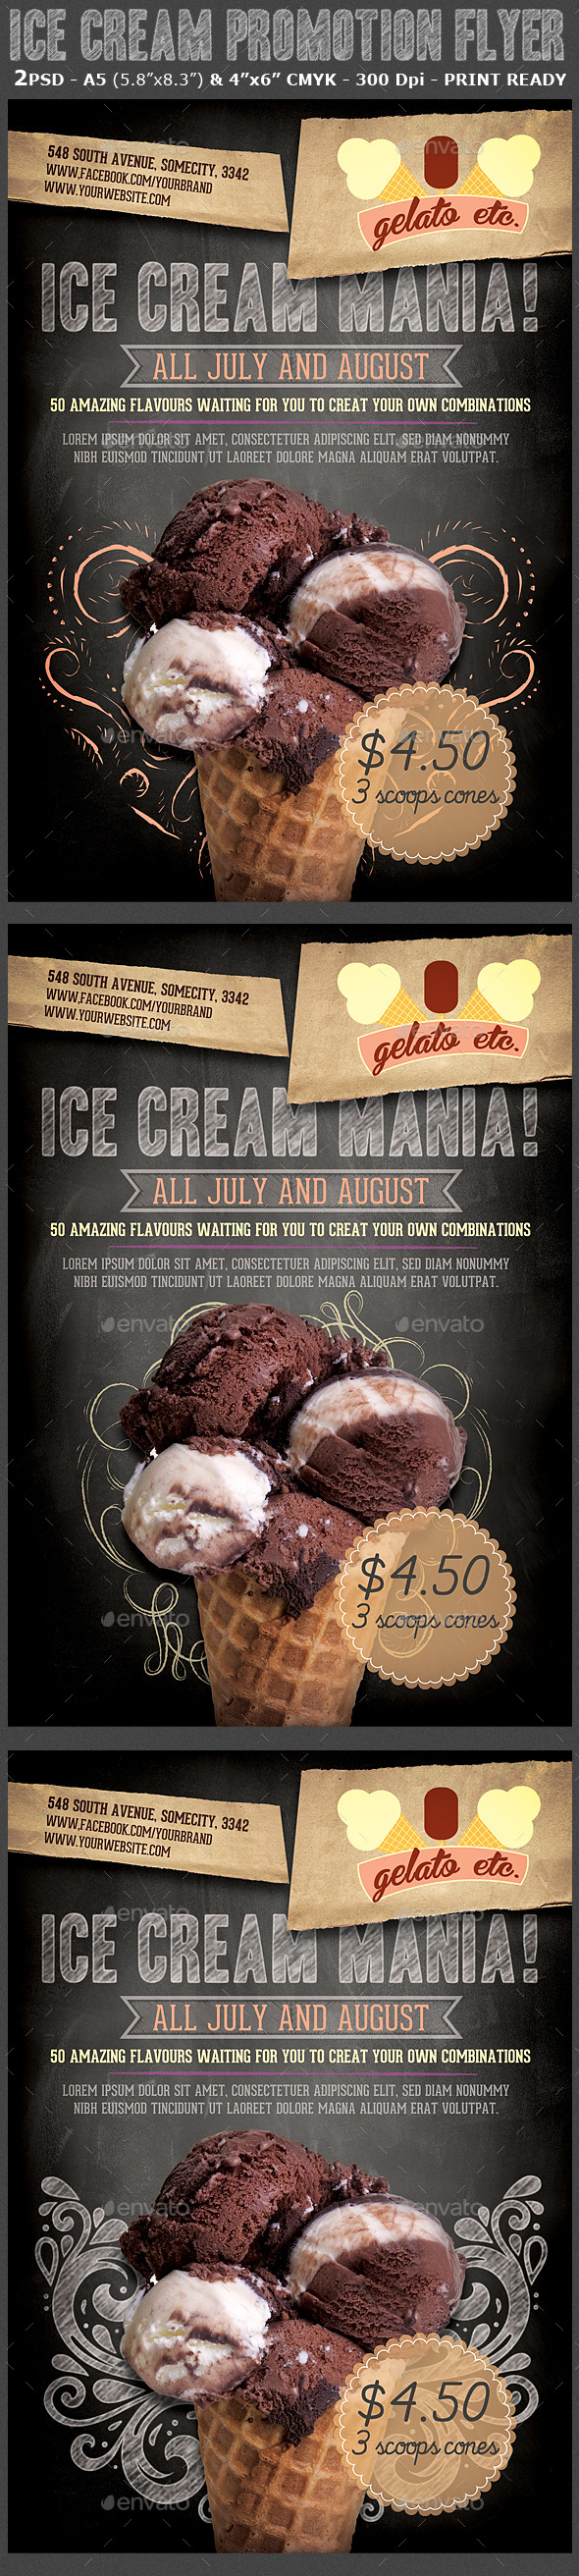 Ice Cream Shop Promotion Flyer Template - Flyers Print Templates